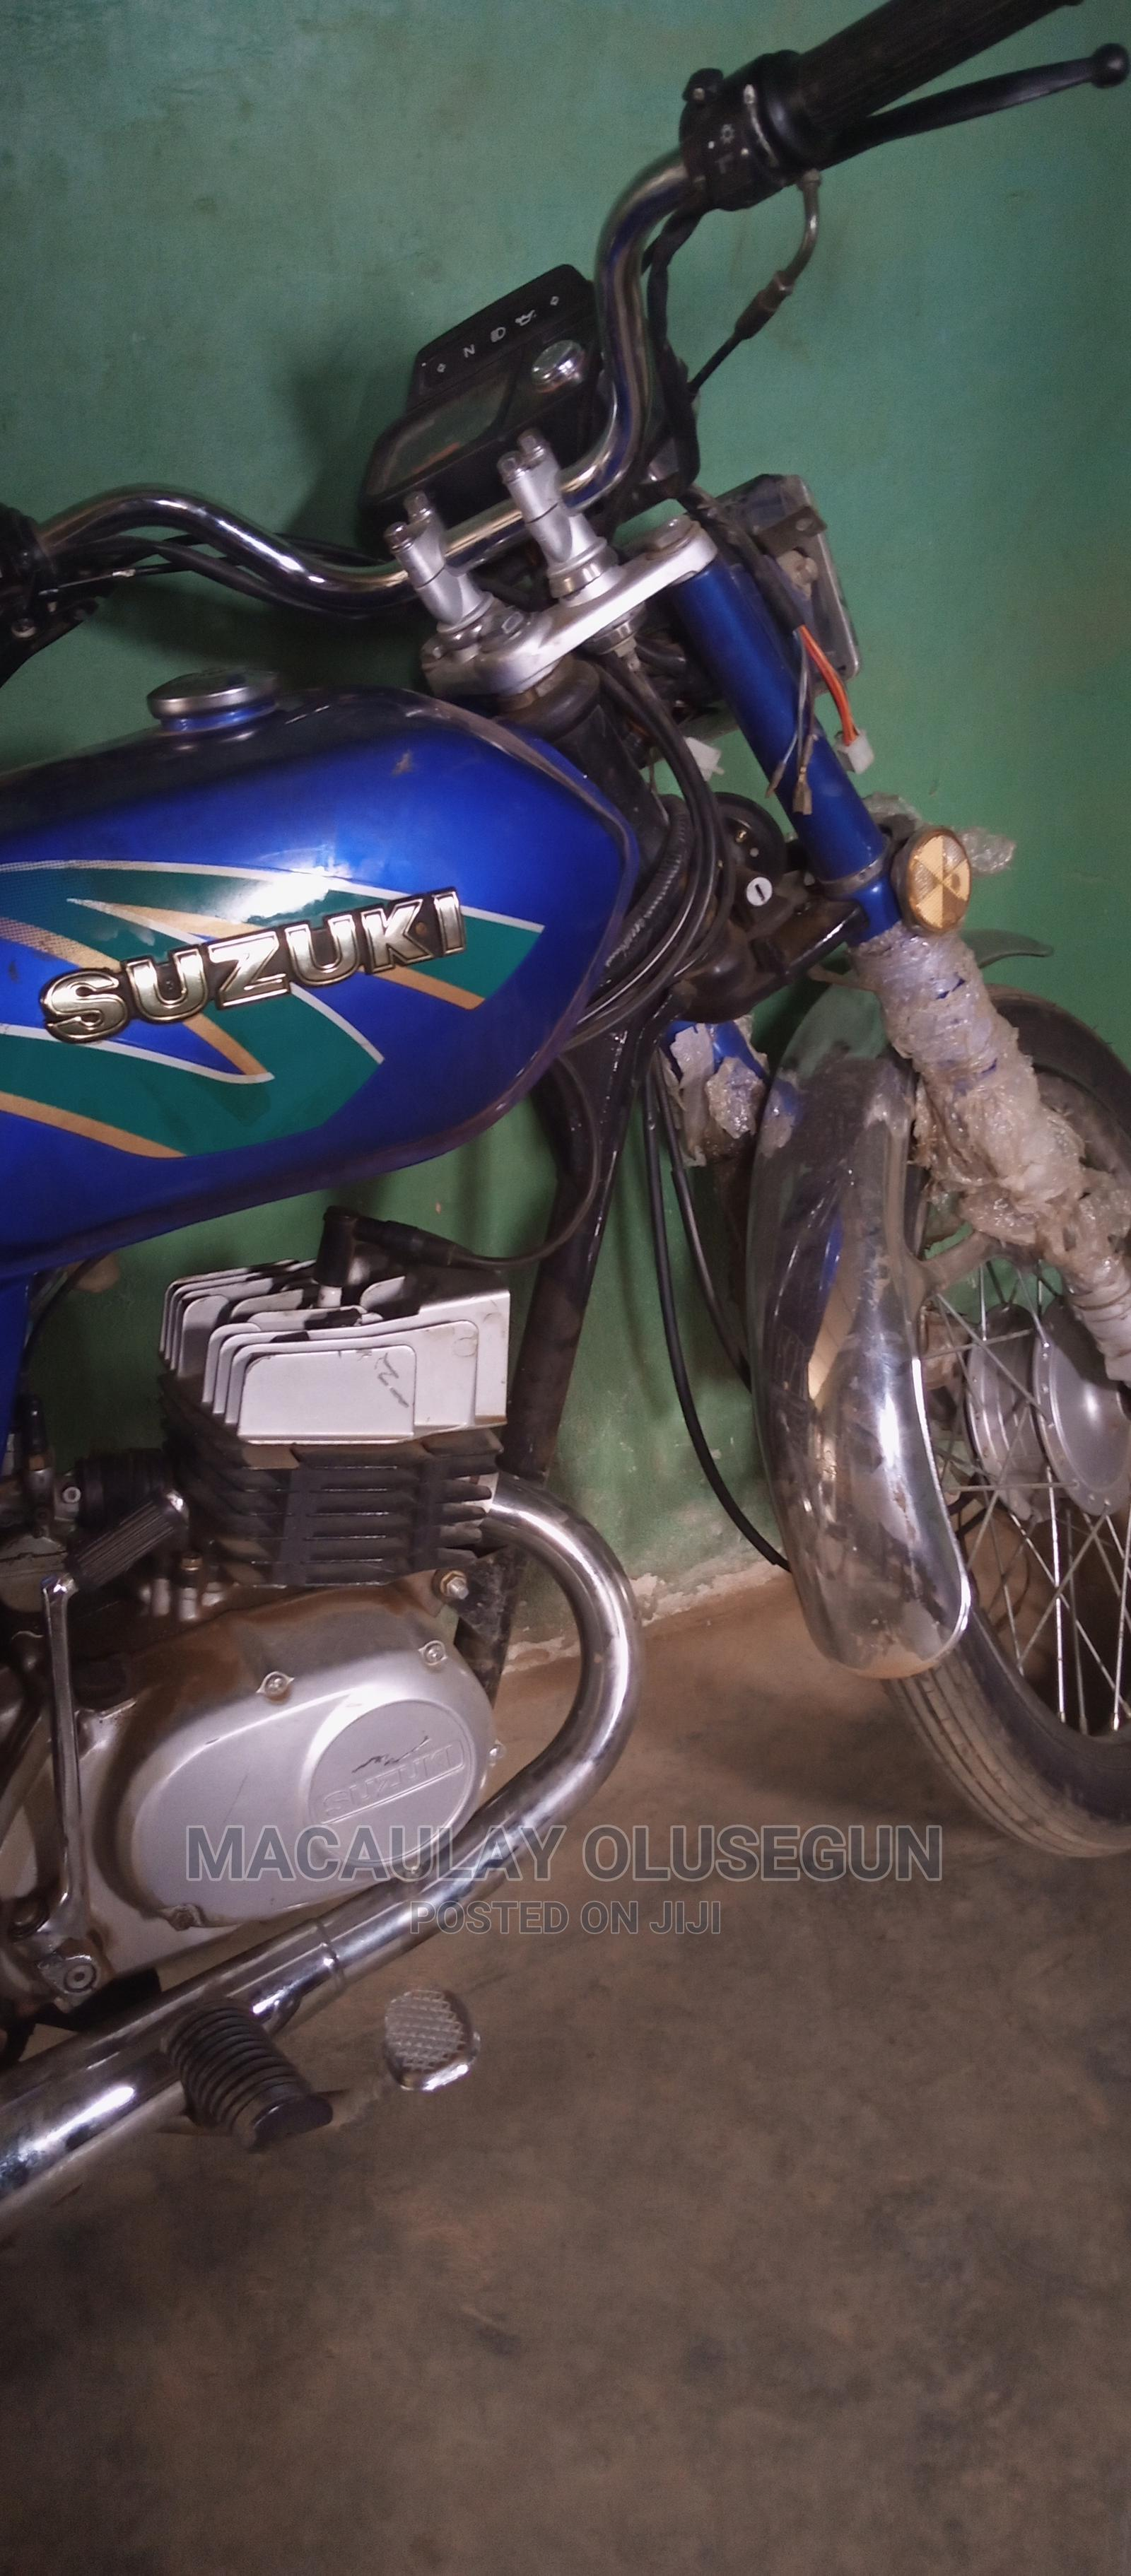 New Suzuki Bike 2014 Blue | Motorcycles & Scooters for sale in Ado-Odo/Ota, Ogun State, Nigeria